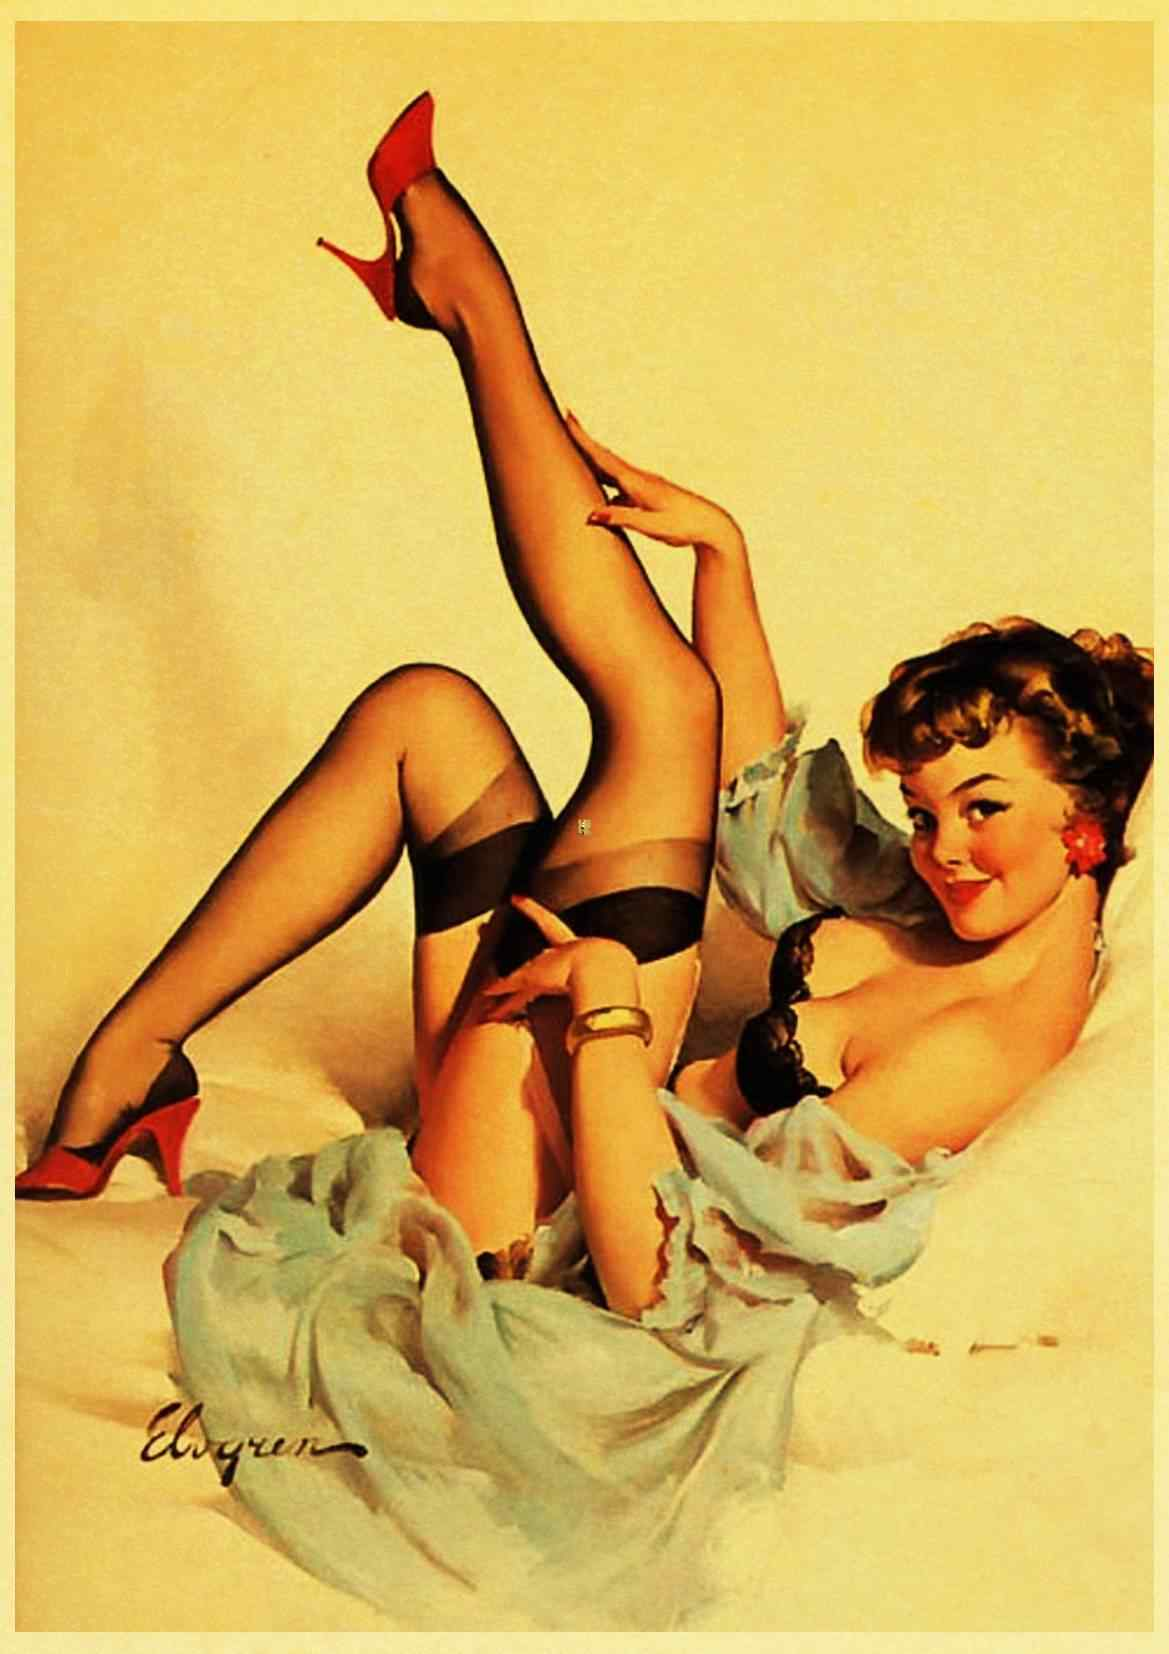 Accept. The Sexy pinup girl on thigh highs likely